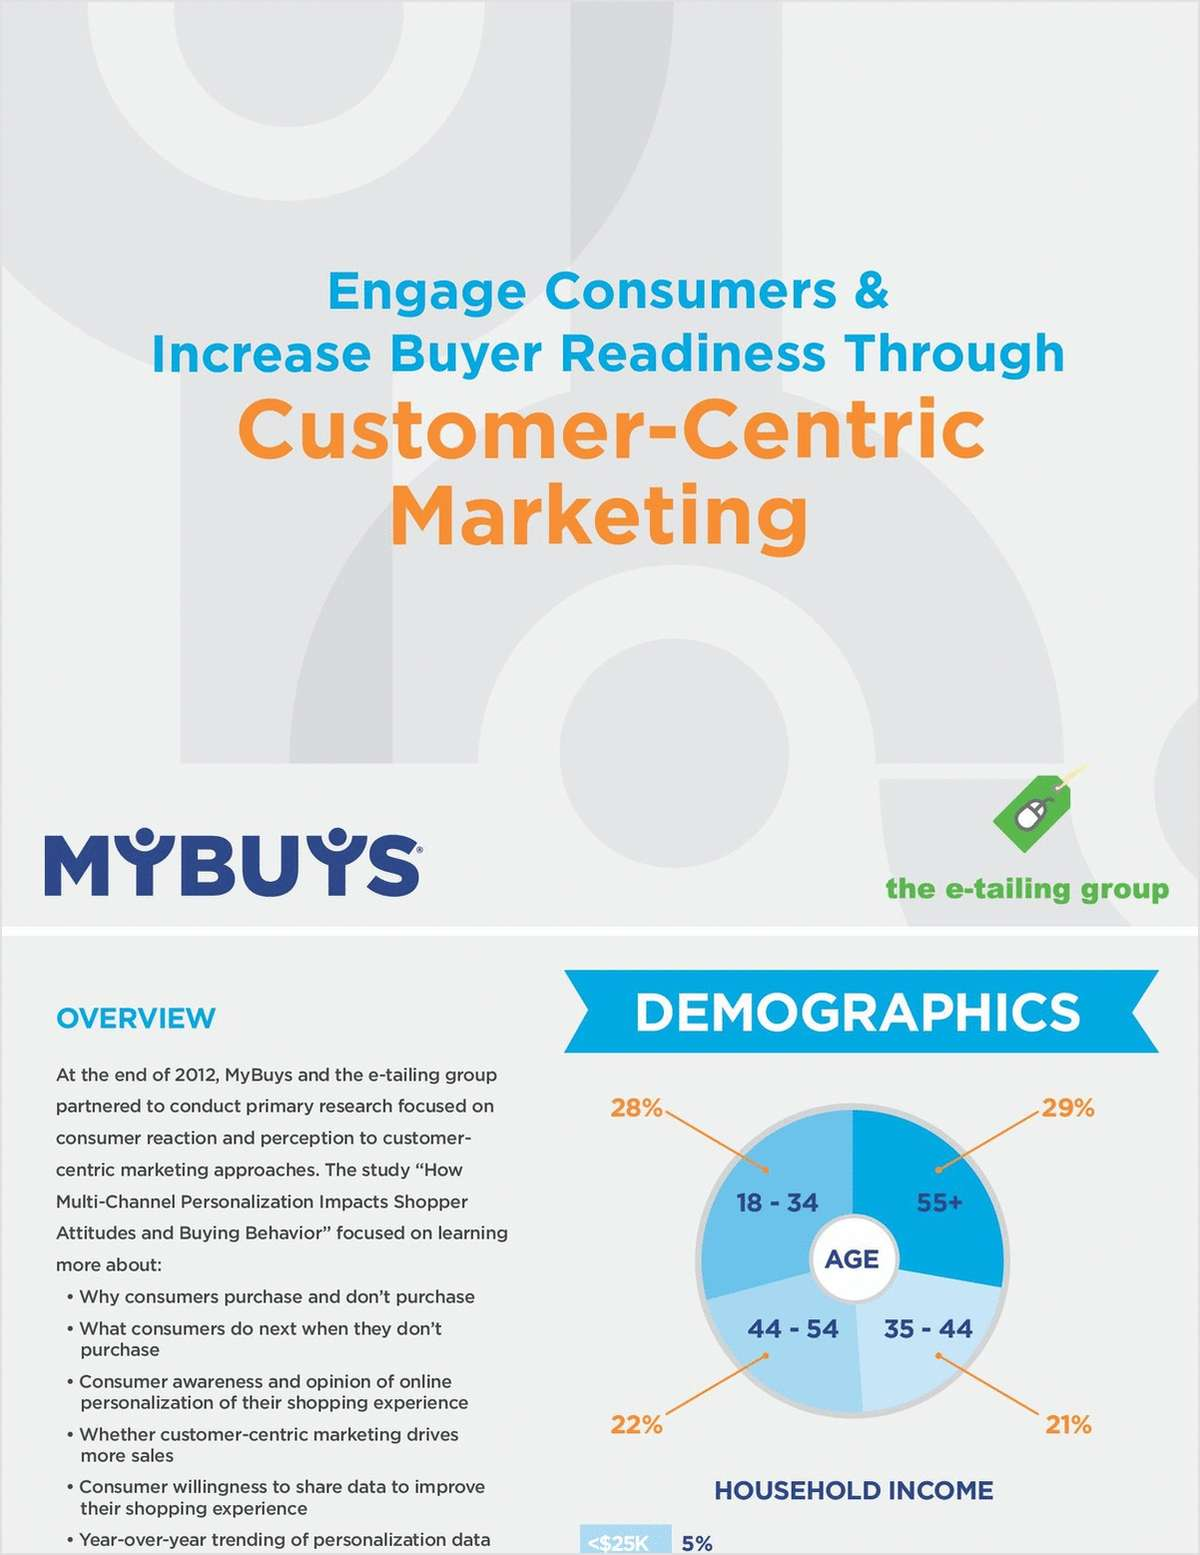 Engage Consumers & Increase Buyer Readiness through Customer-Centric Marketing